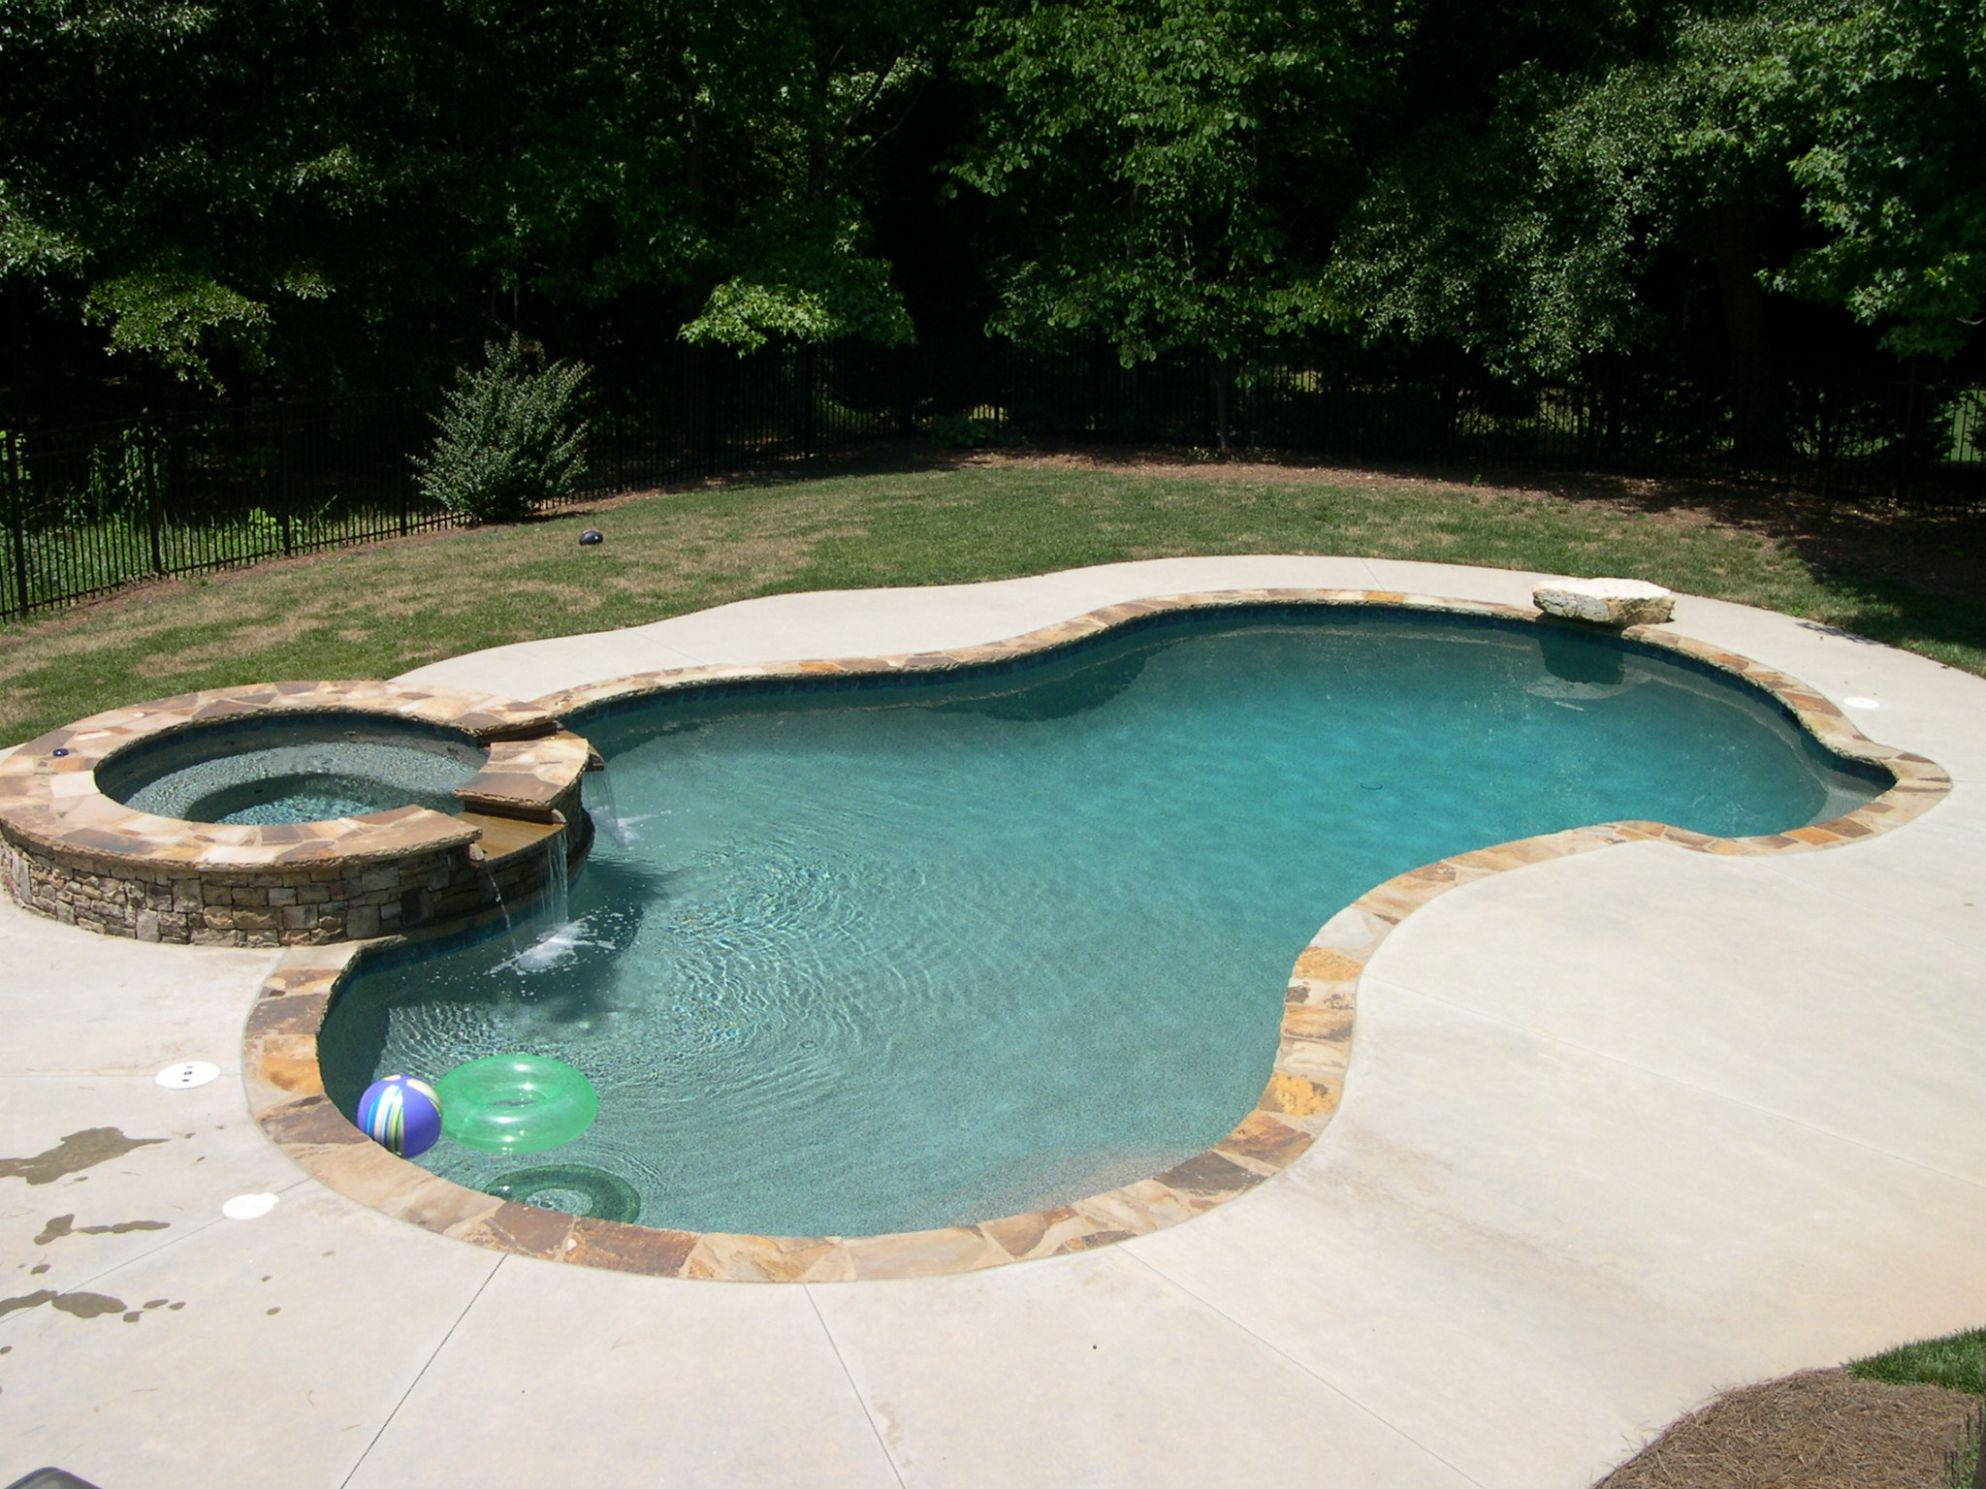 9 Jacuzzi Pools For Your Home - pool jacuzzi ideas